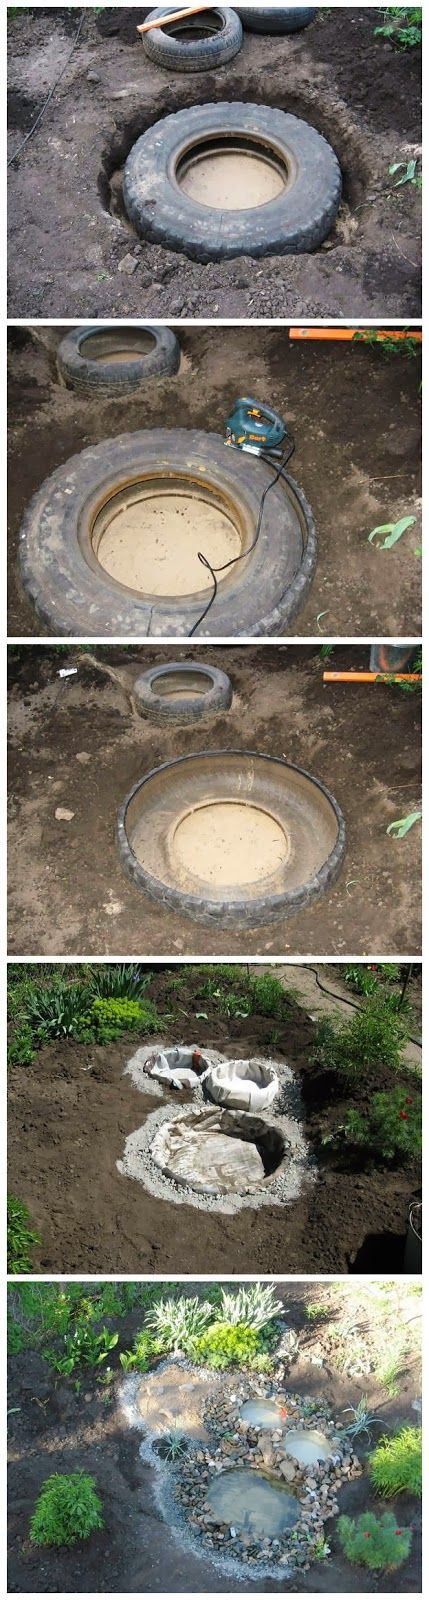 Recycled Tires Pond: